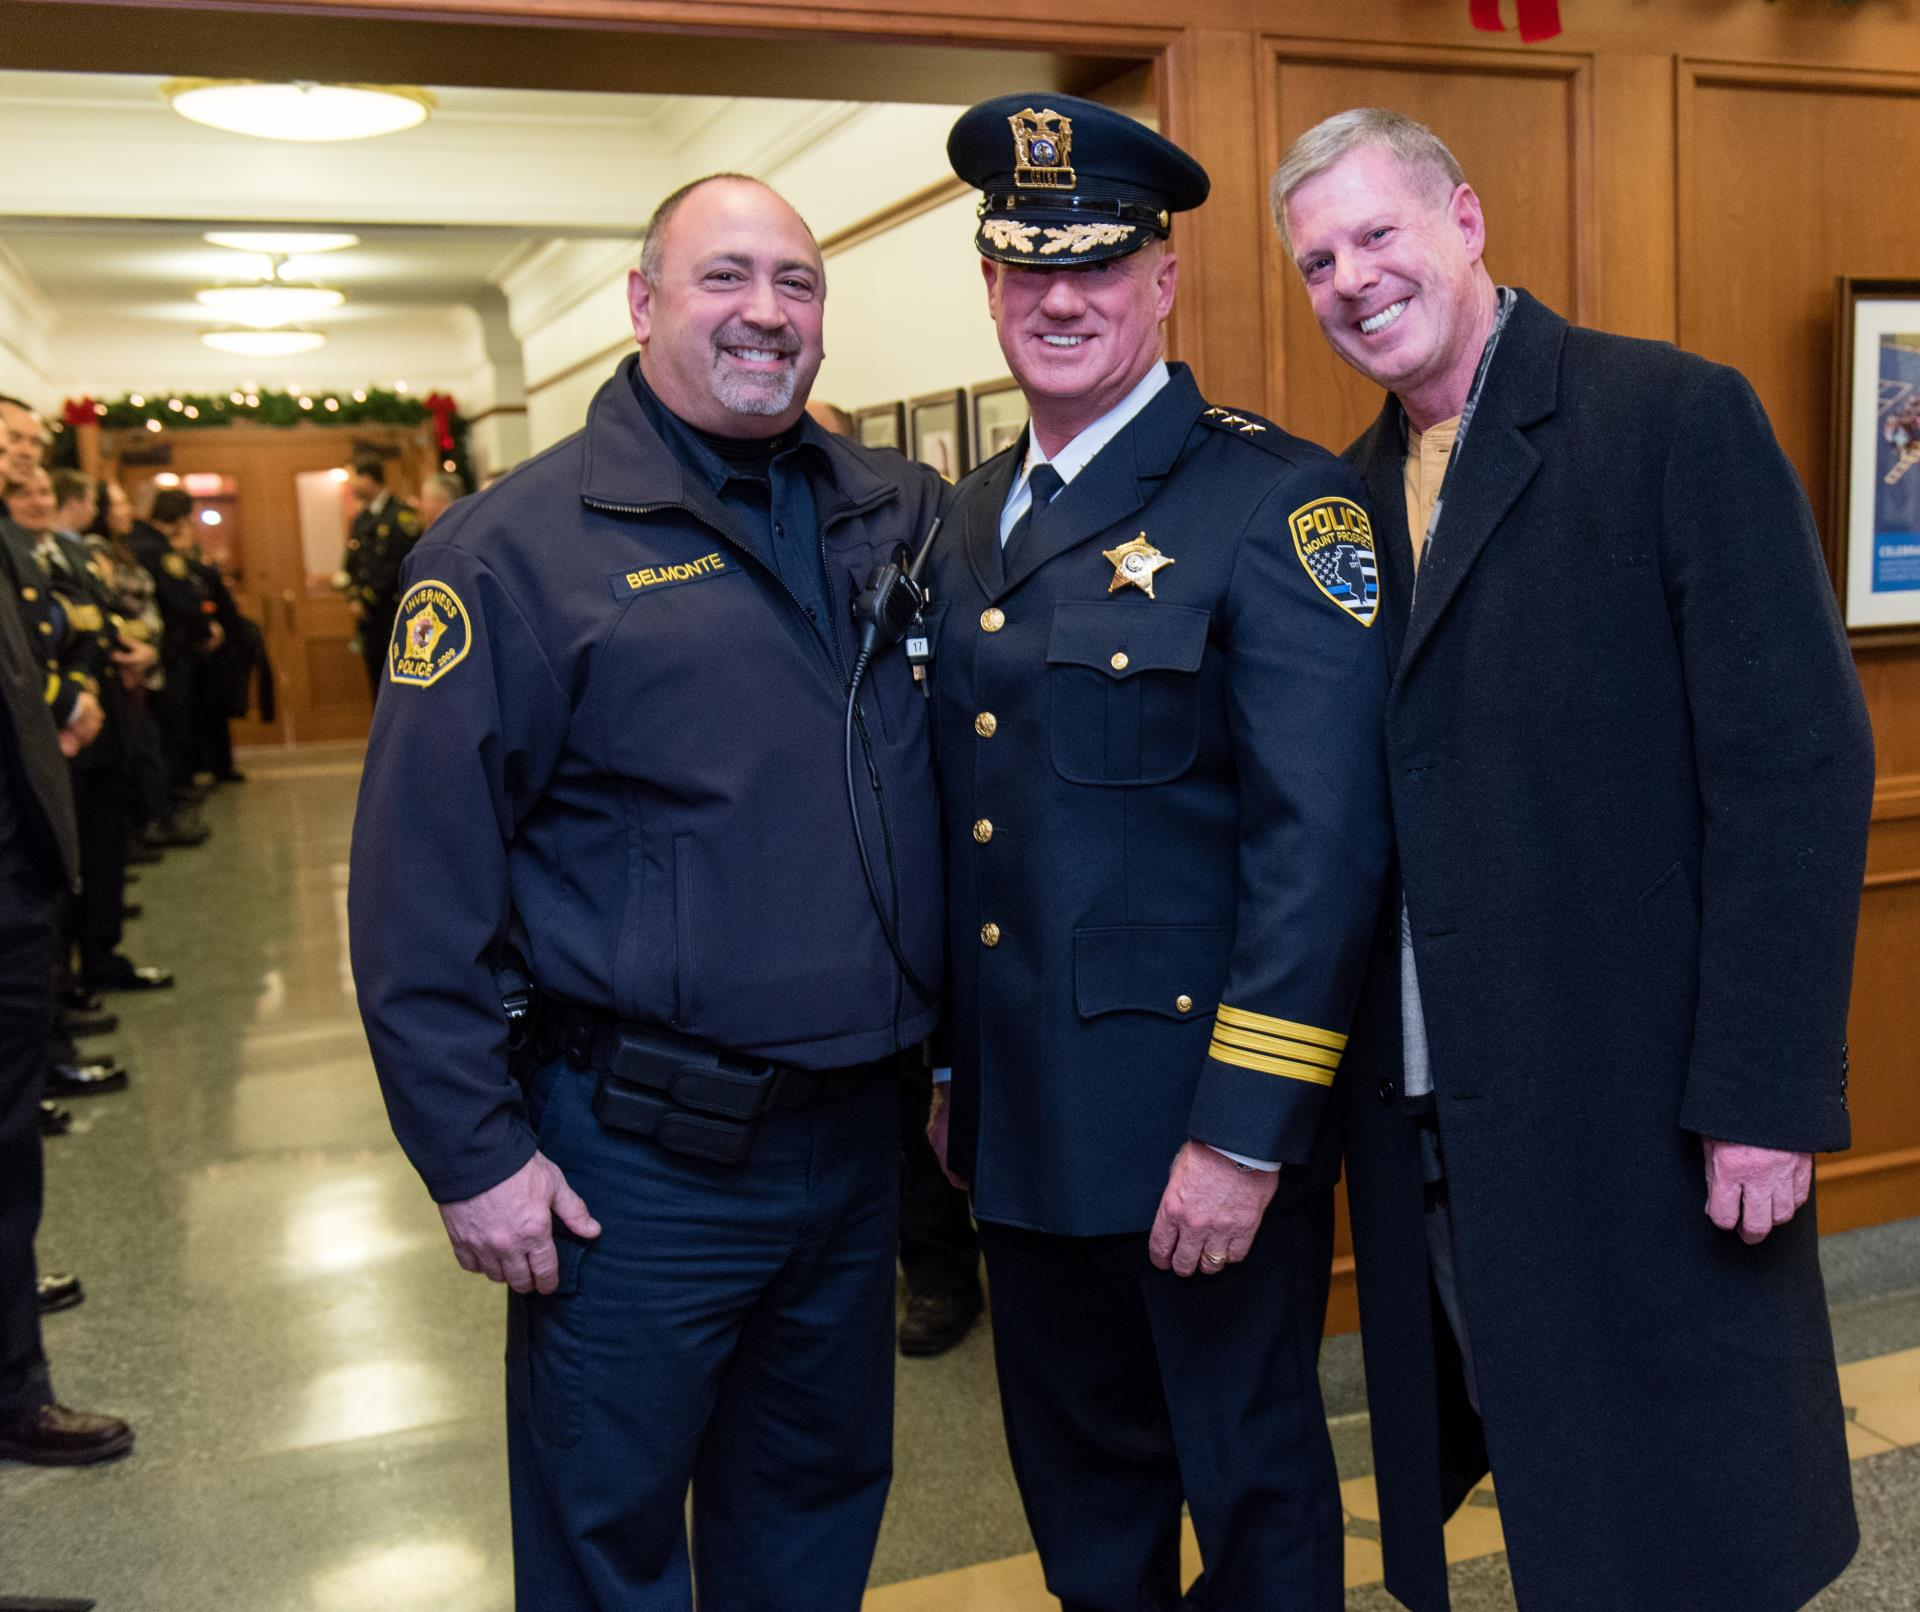 Chief Koziol Swearing-In Ceremony Final-4297